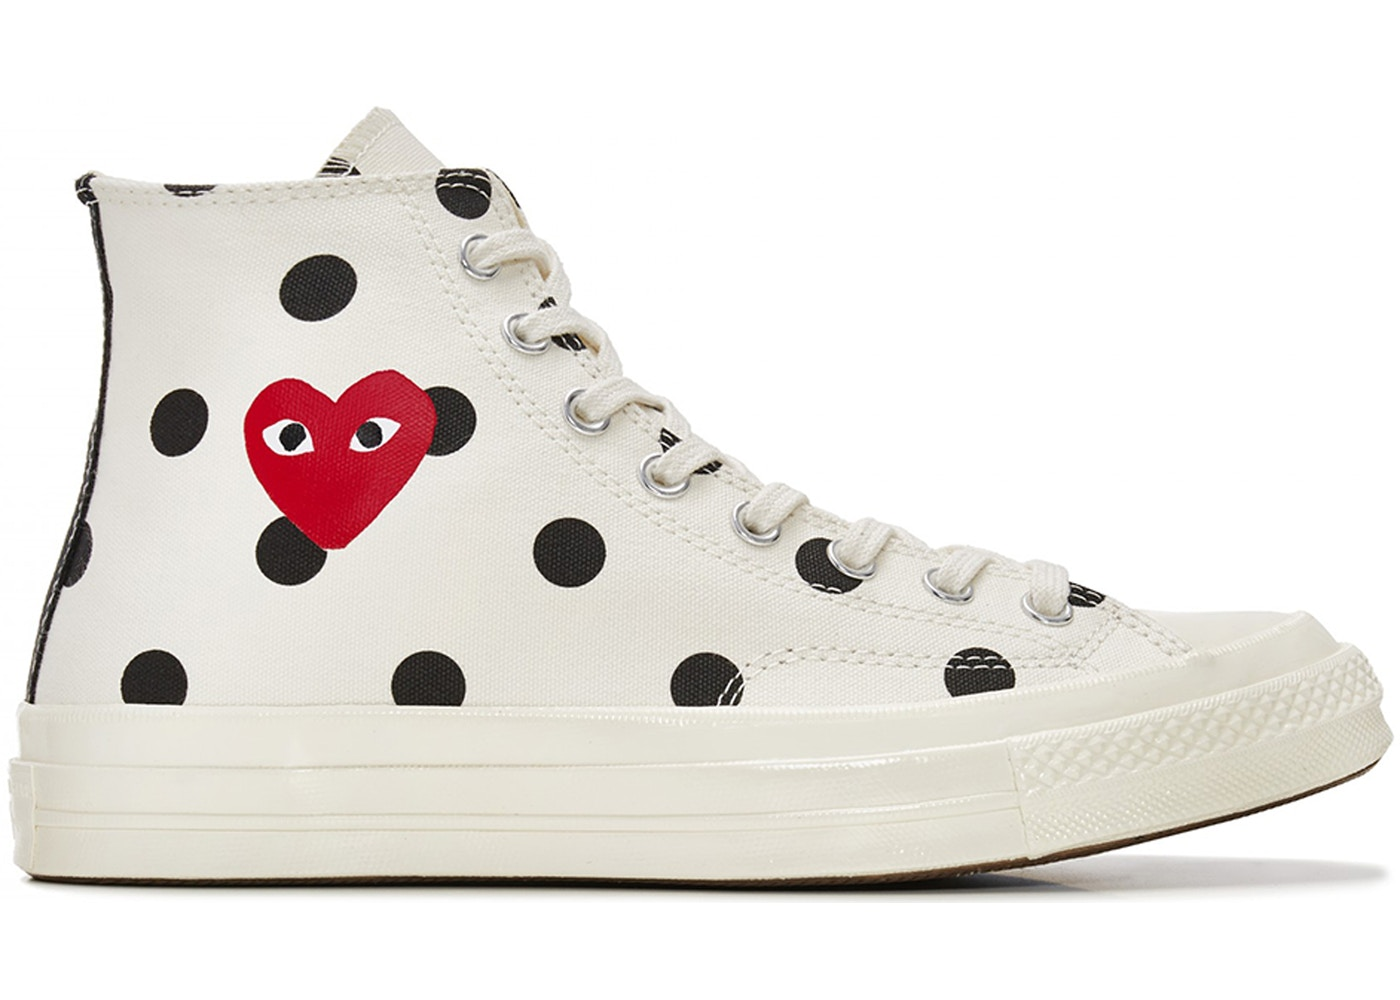 04ce5a75f7b4 Converse Chuck Taylor All-Star 70s Hi Comme des Garcons Polka Dot White